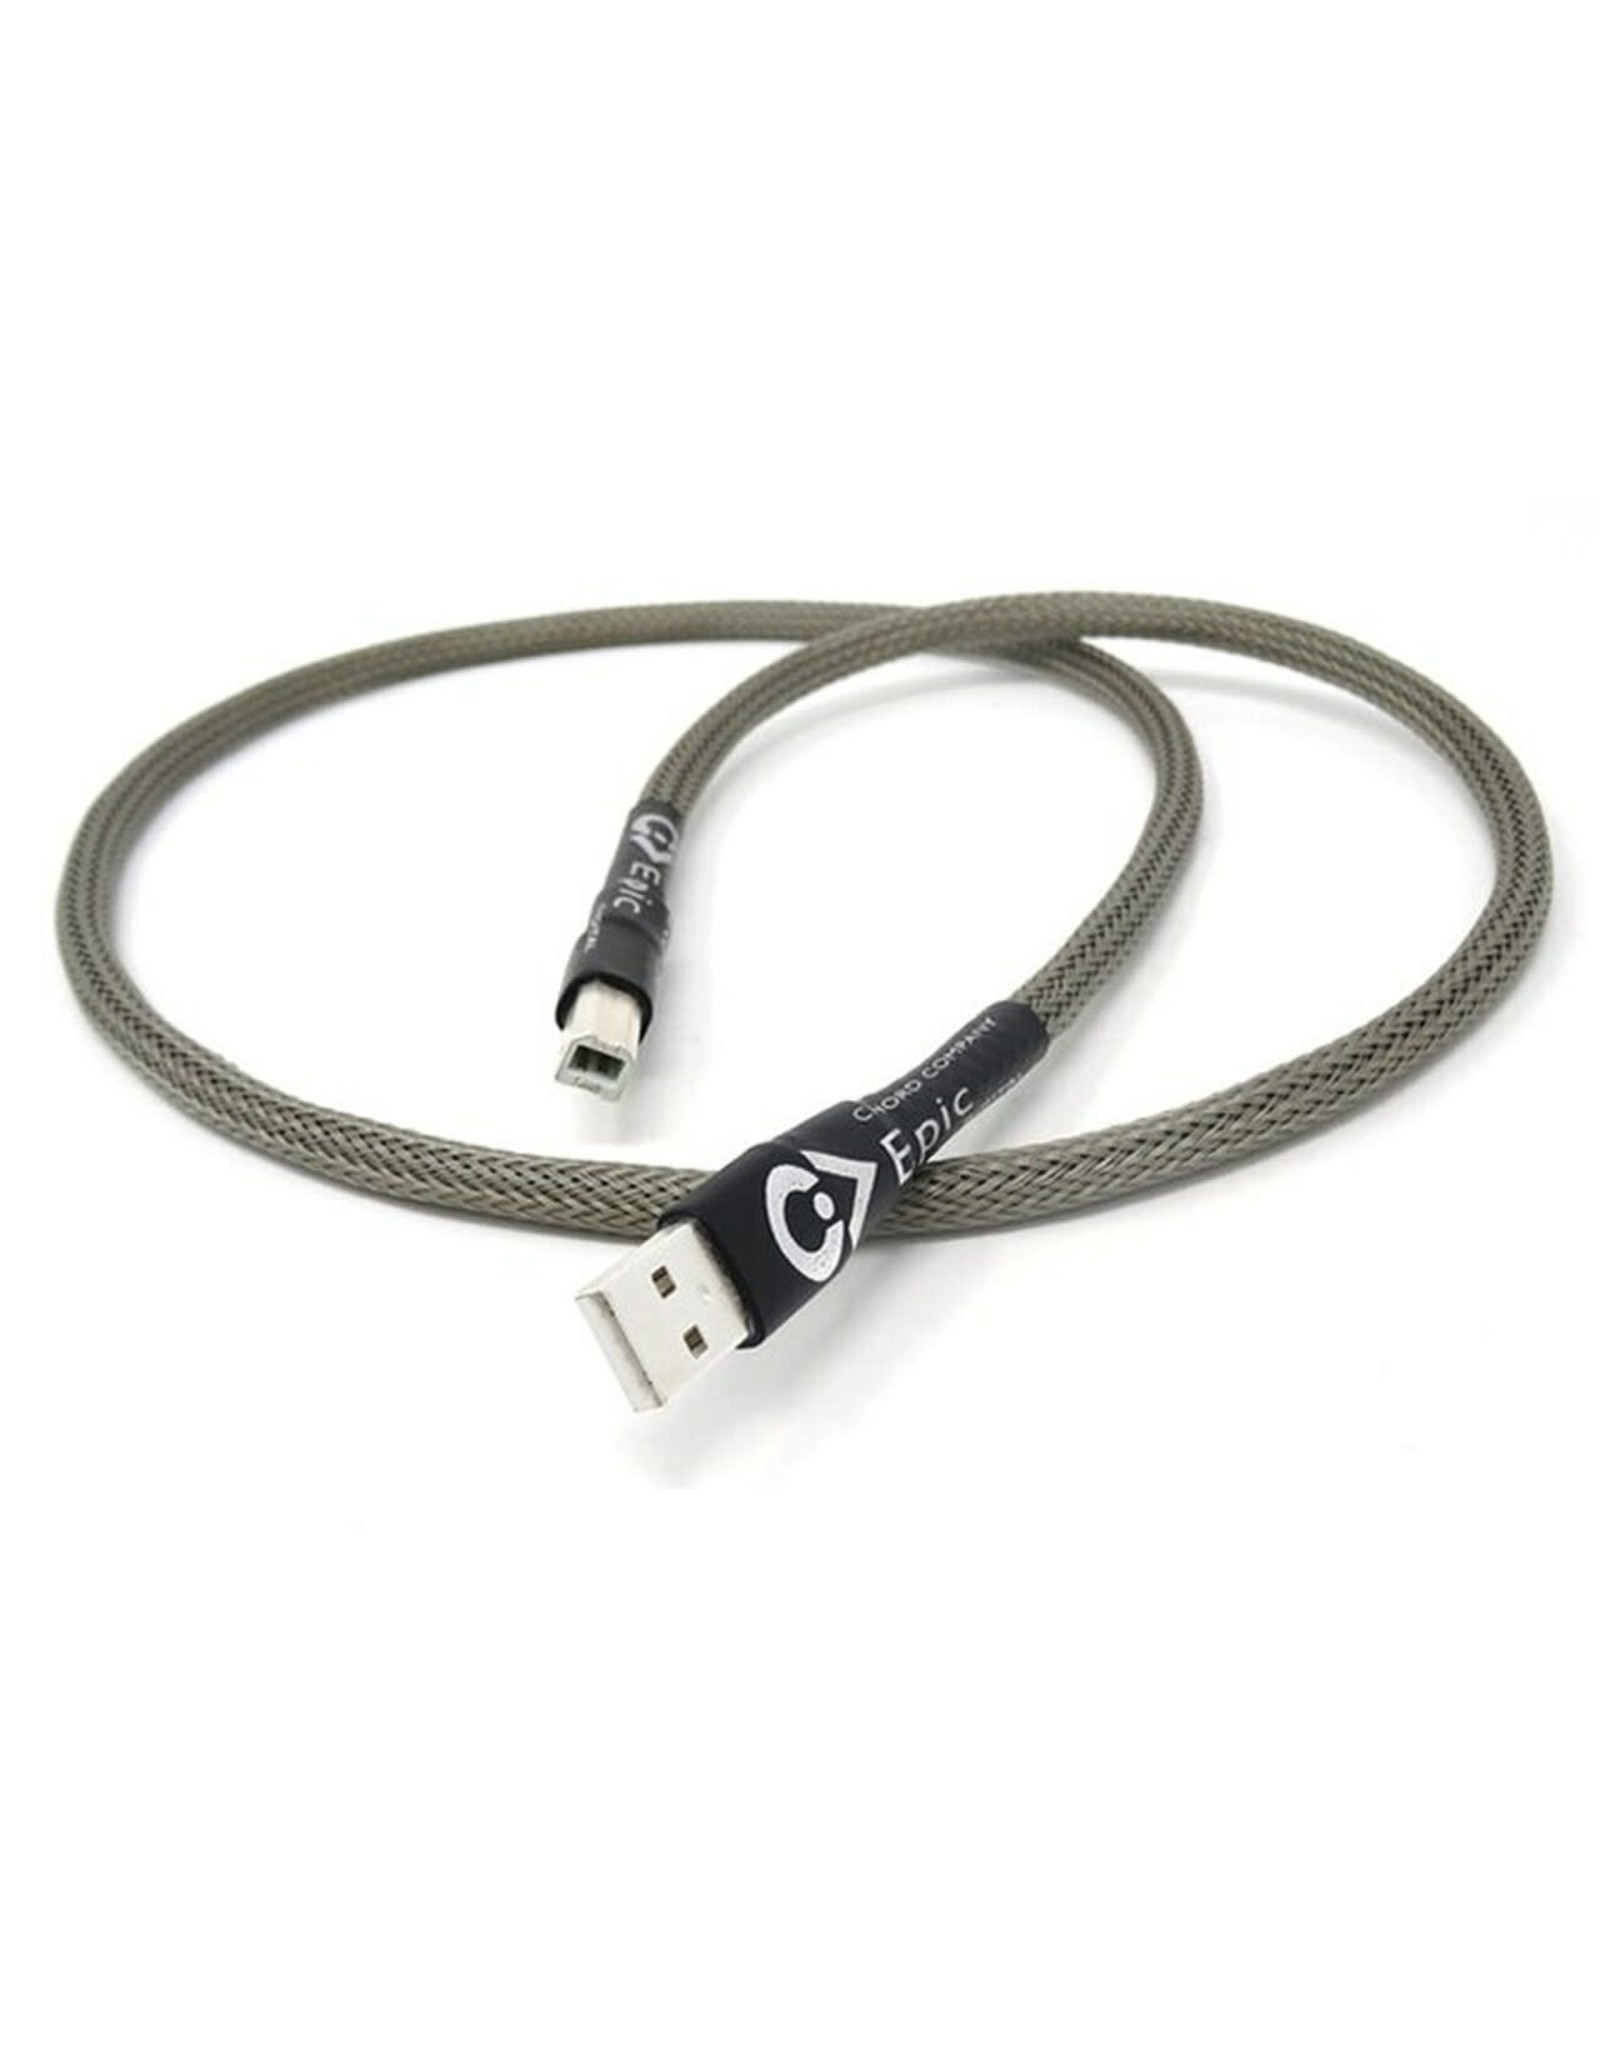 Chord Company Chord Epic USB Cable